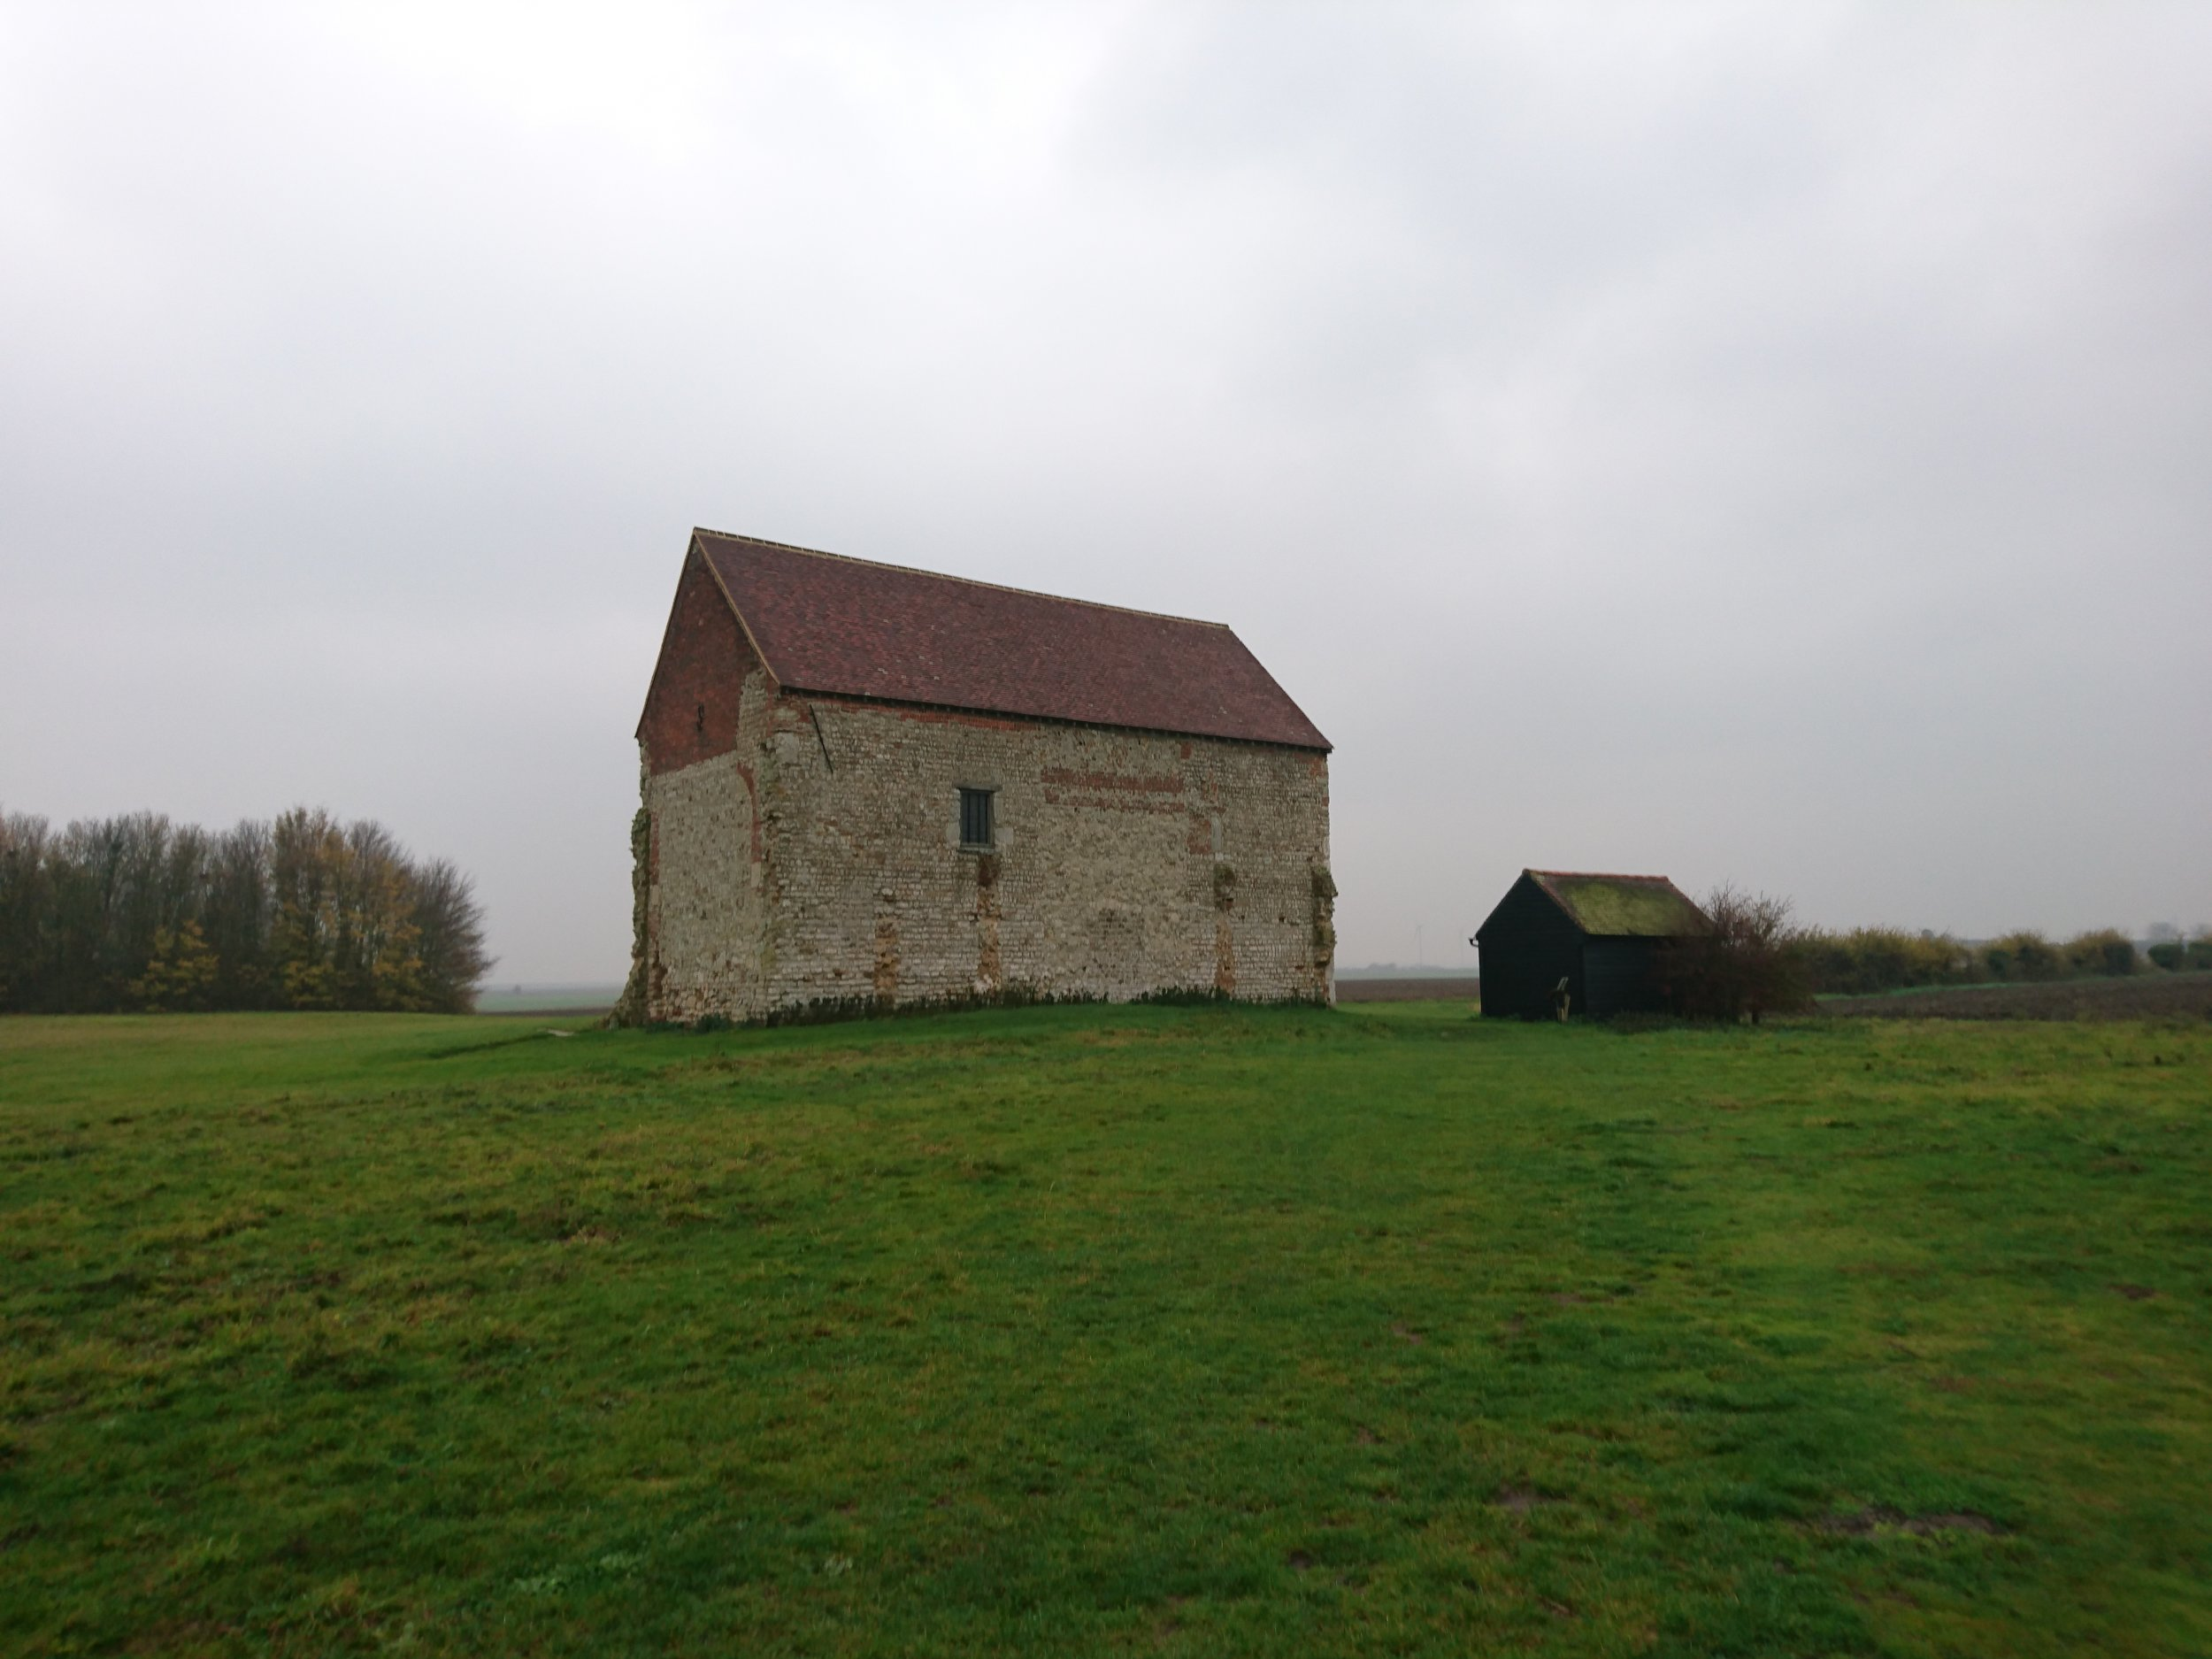 Chapel of St Peter on the Wall